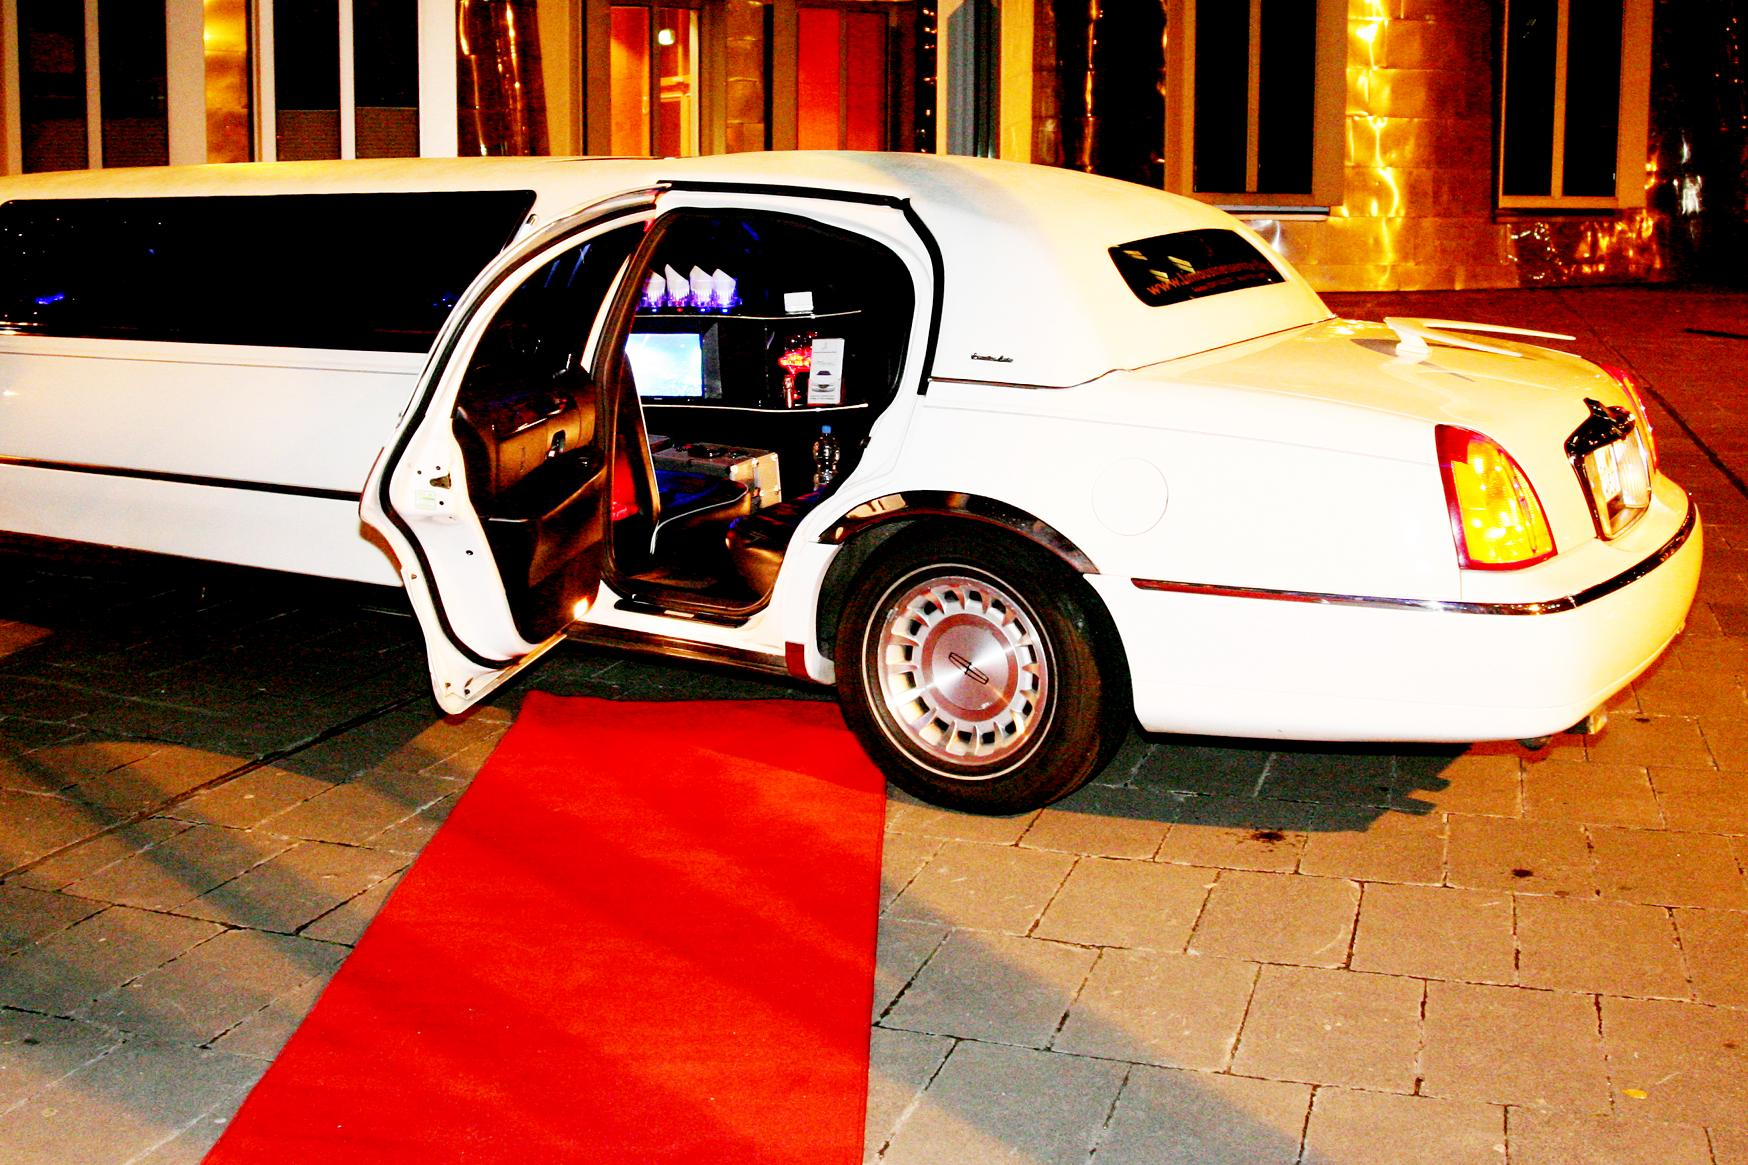 Lincoln-Stretchlimousine-mit-rotem-Teppich